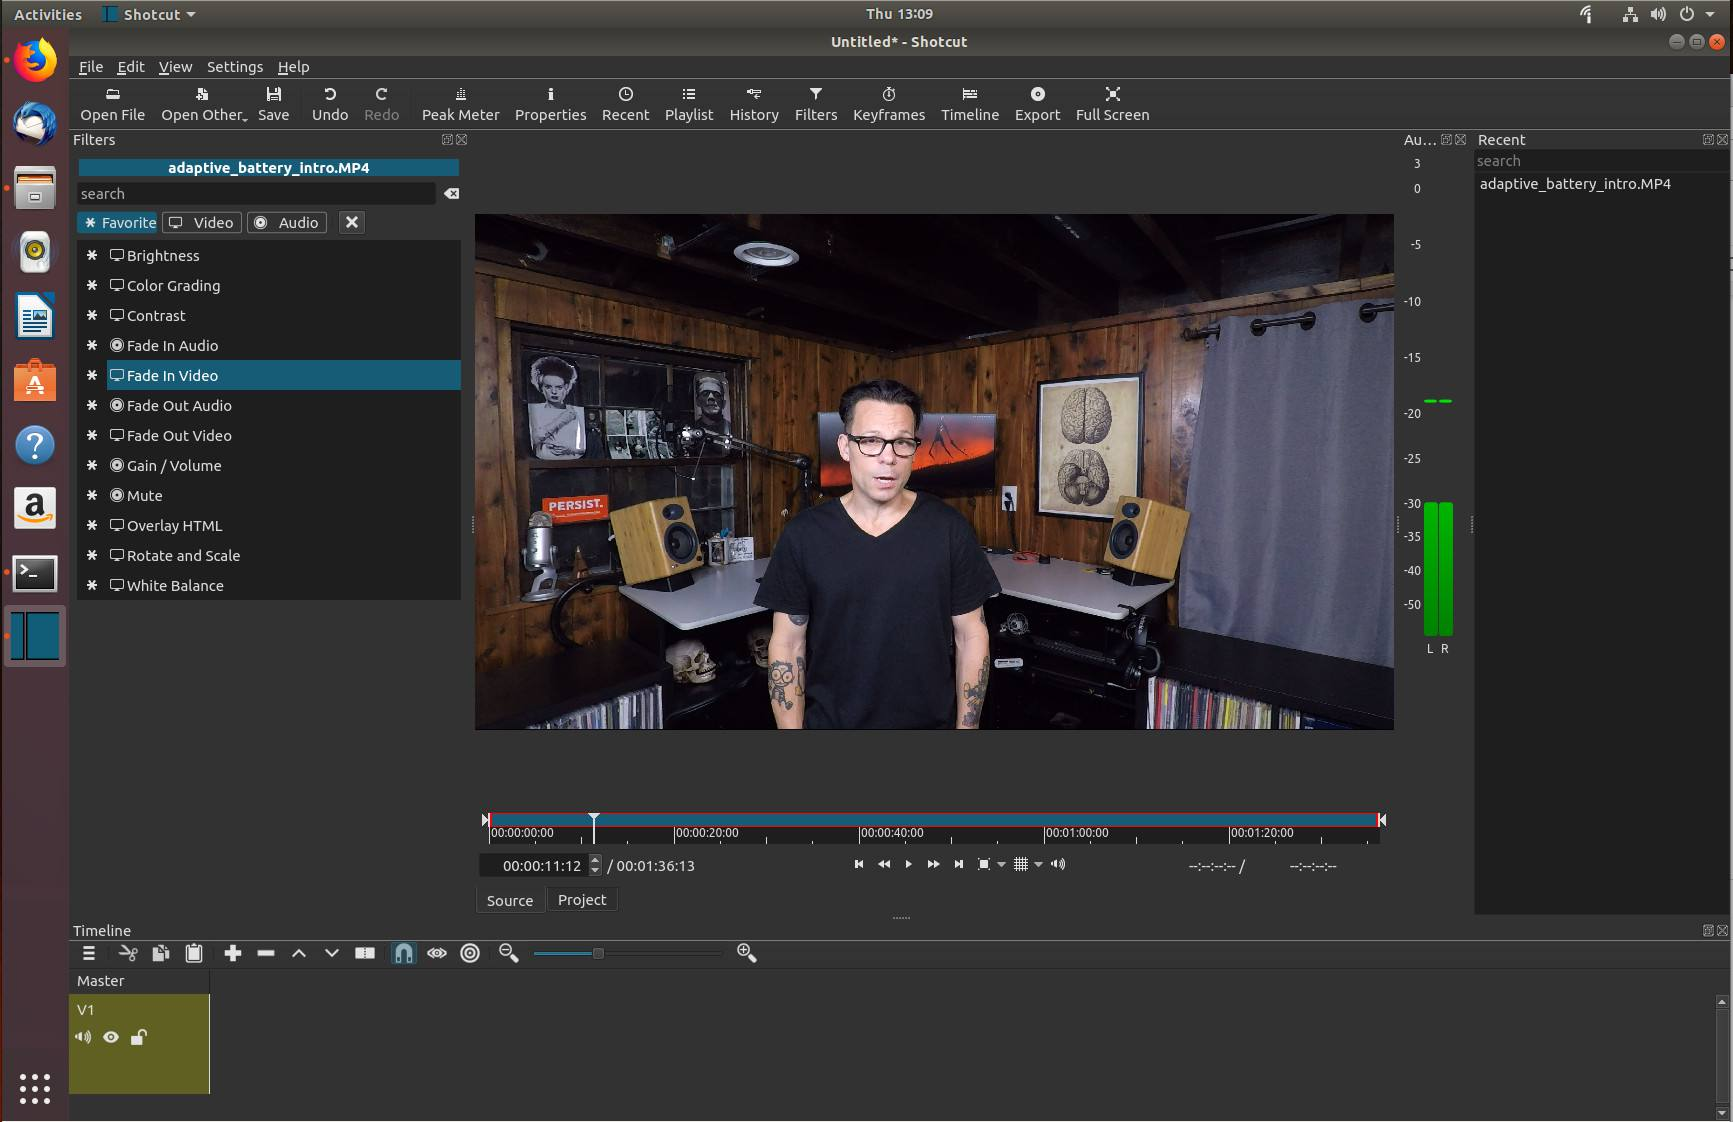 Editing a video in the Shotcut Video Editor